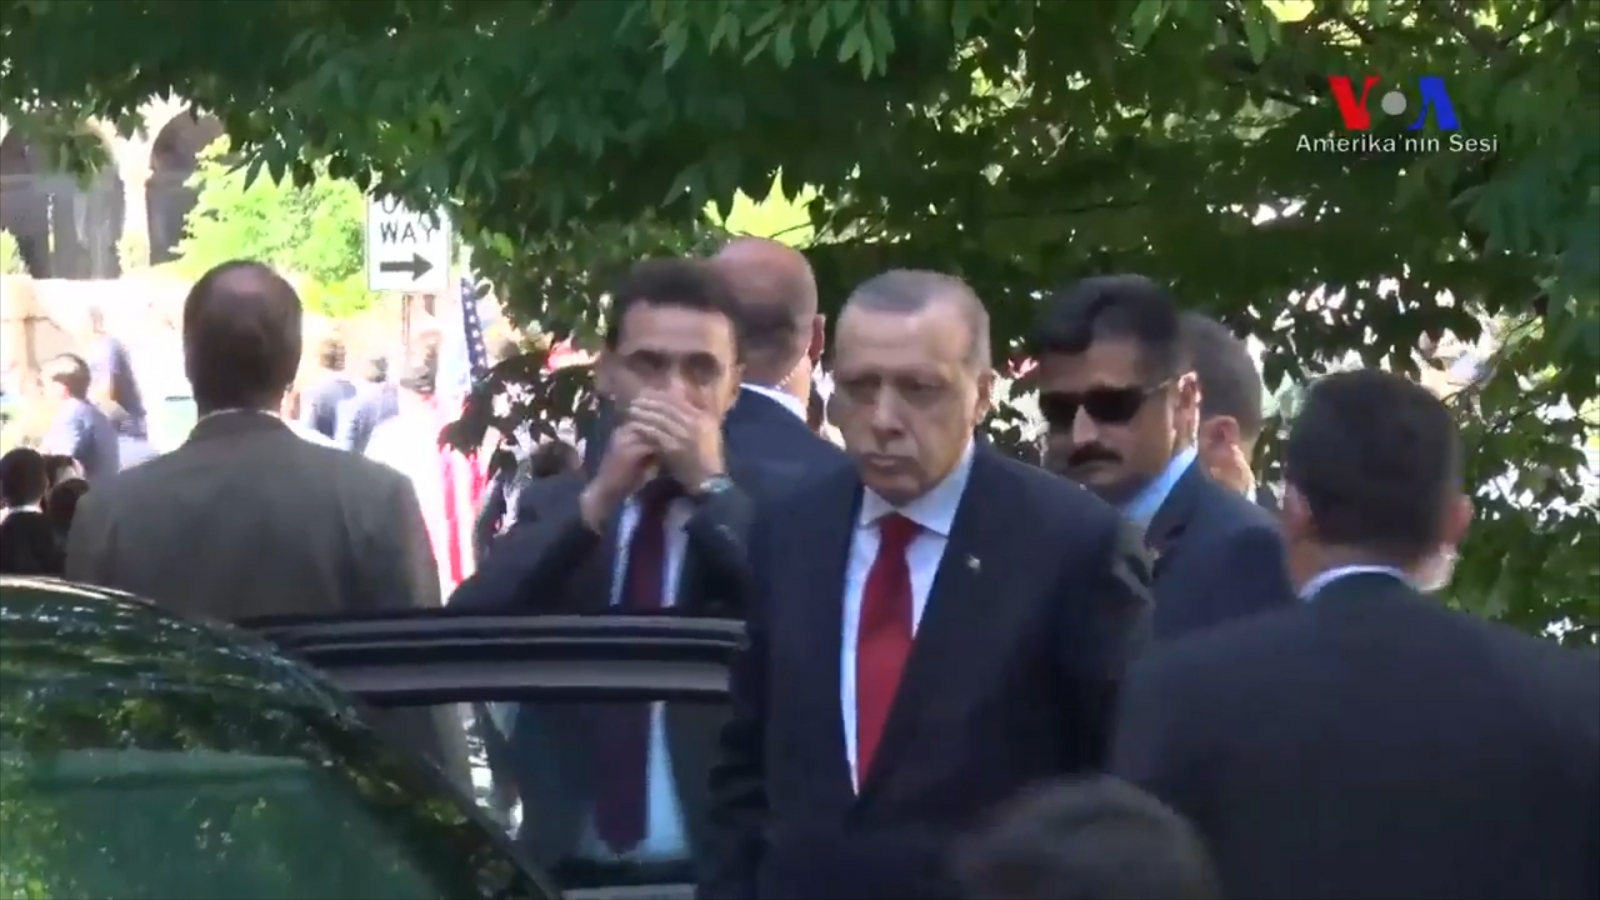 Turkish security clashes with protesters in Washington as Erdogan looks on